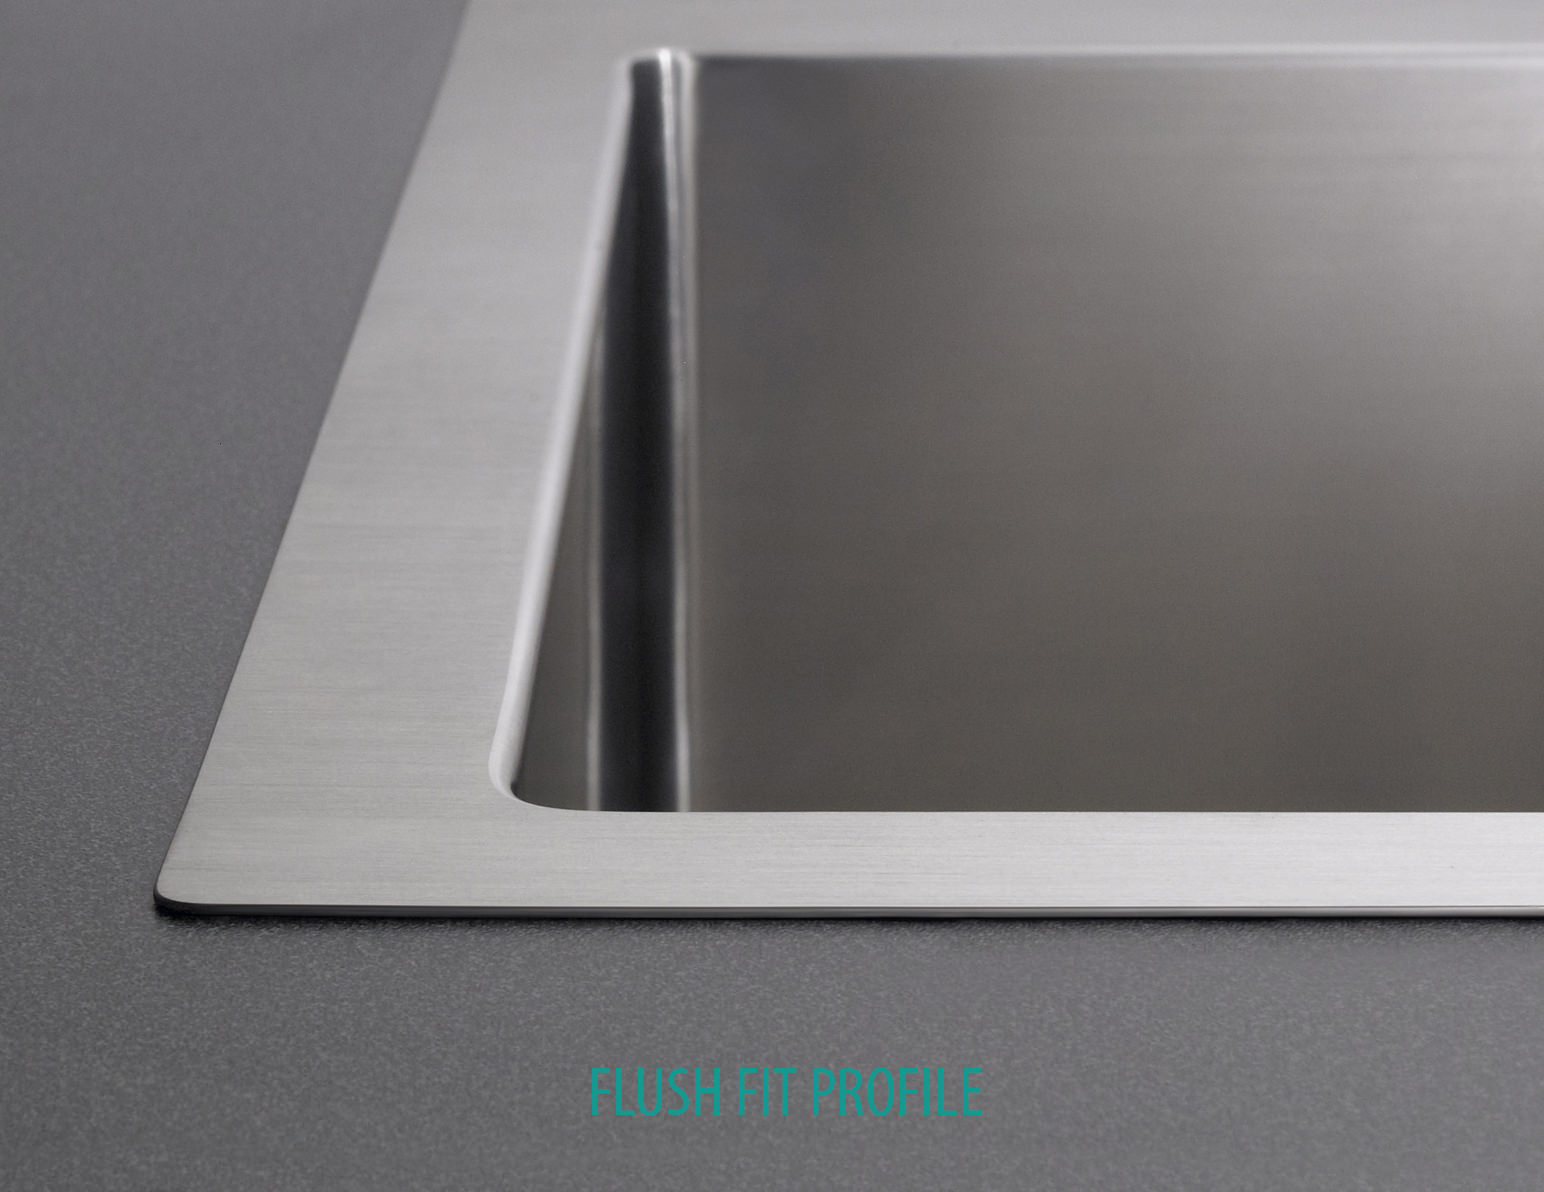 Astracast Vantage Stainless Steel Inset Sink And Accessory